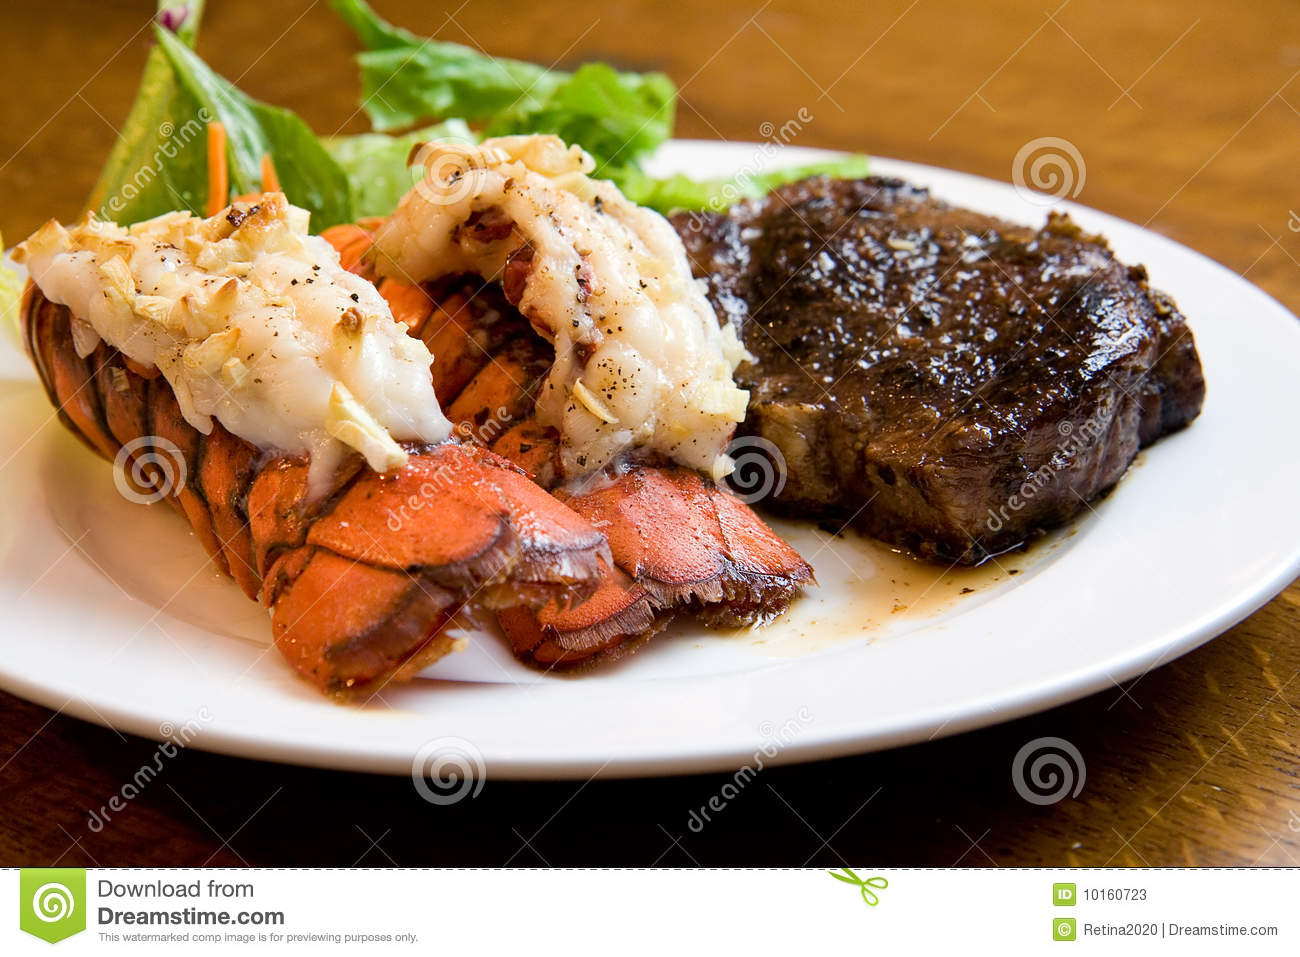 Lobster and Steak stock image. Image of sauce, steak - 10160723